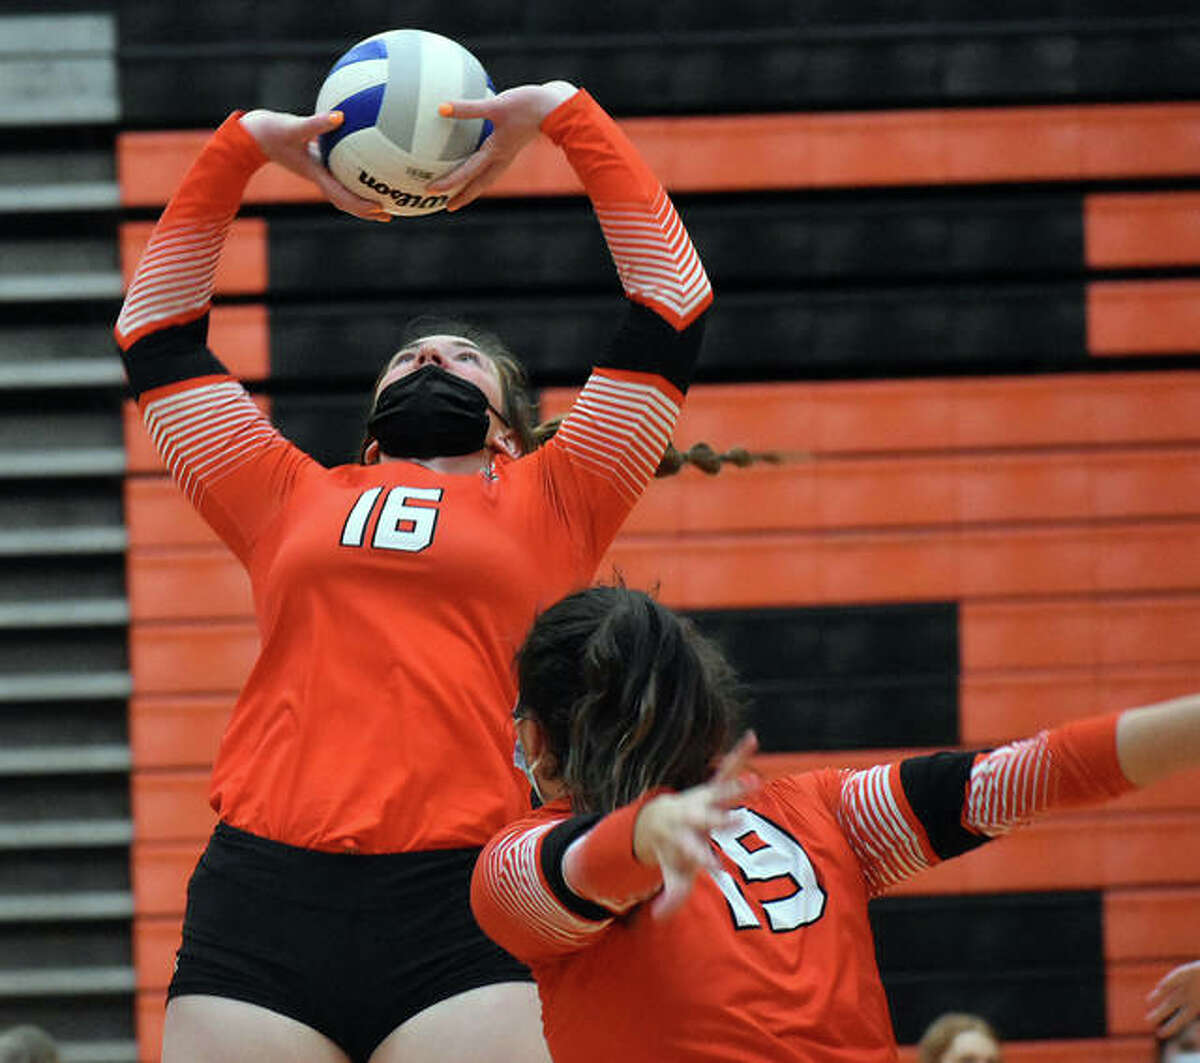 Edwardsville's Lexie Griffin sets a pass for teammate Rhianna Huebner in the first game against Belleville East on Wednesday in Edwardsville.